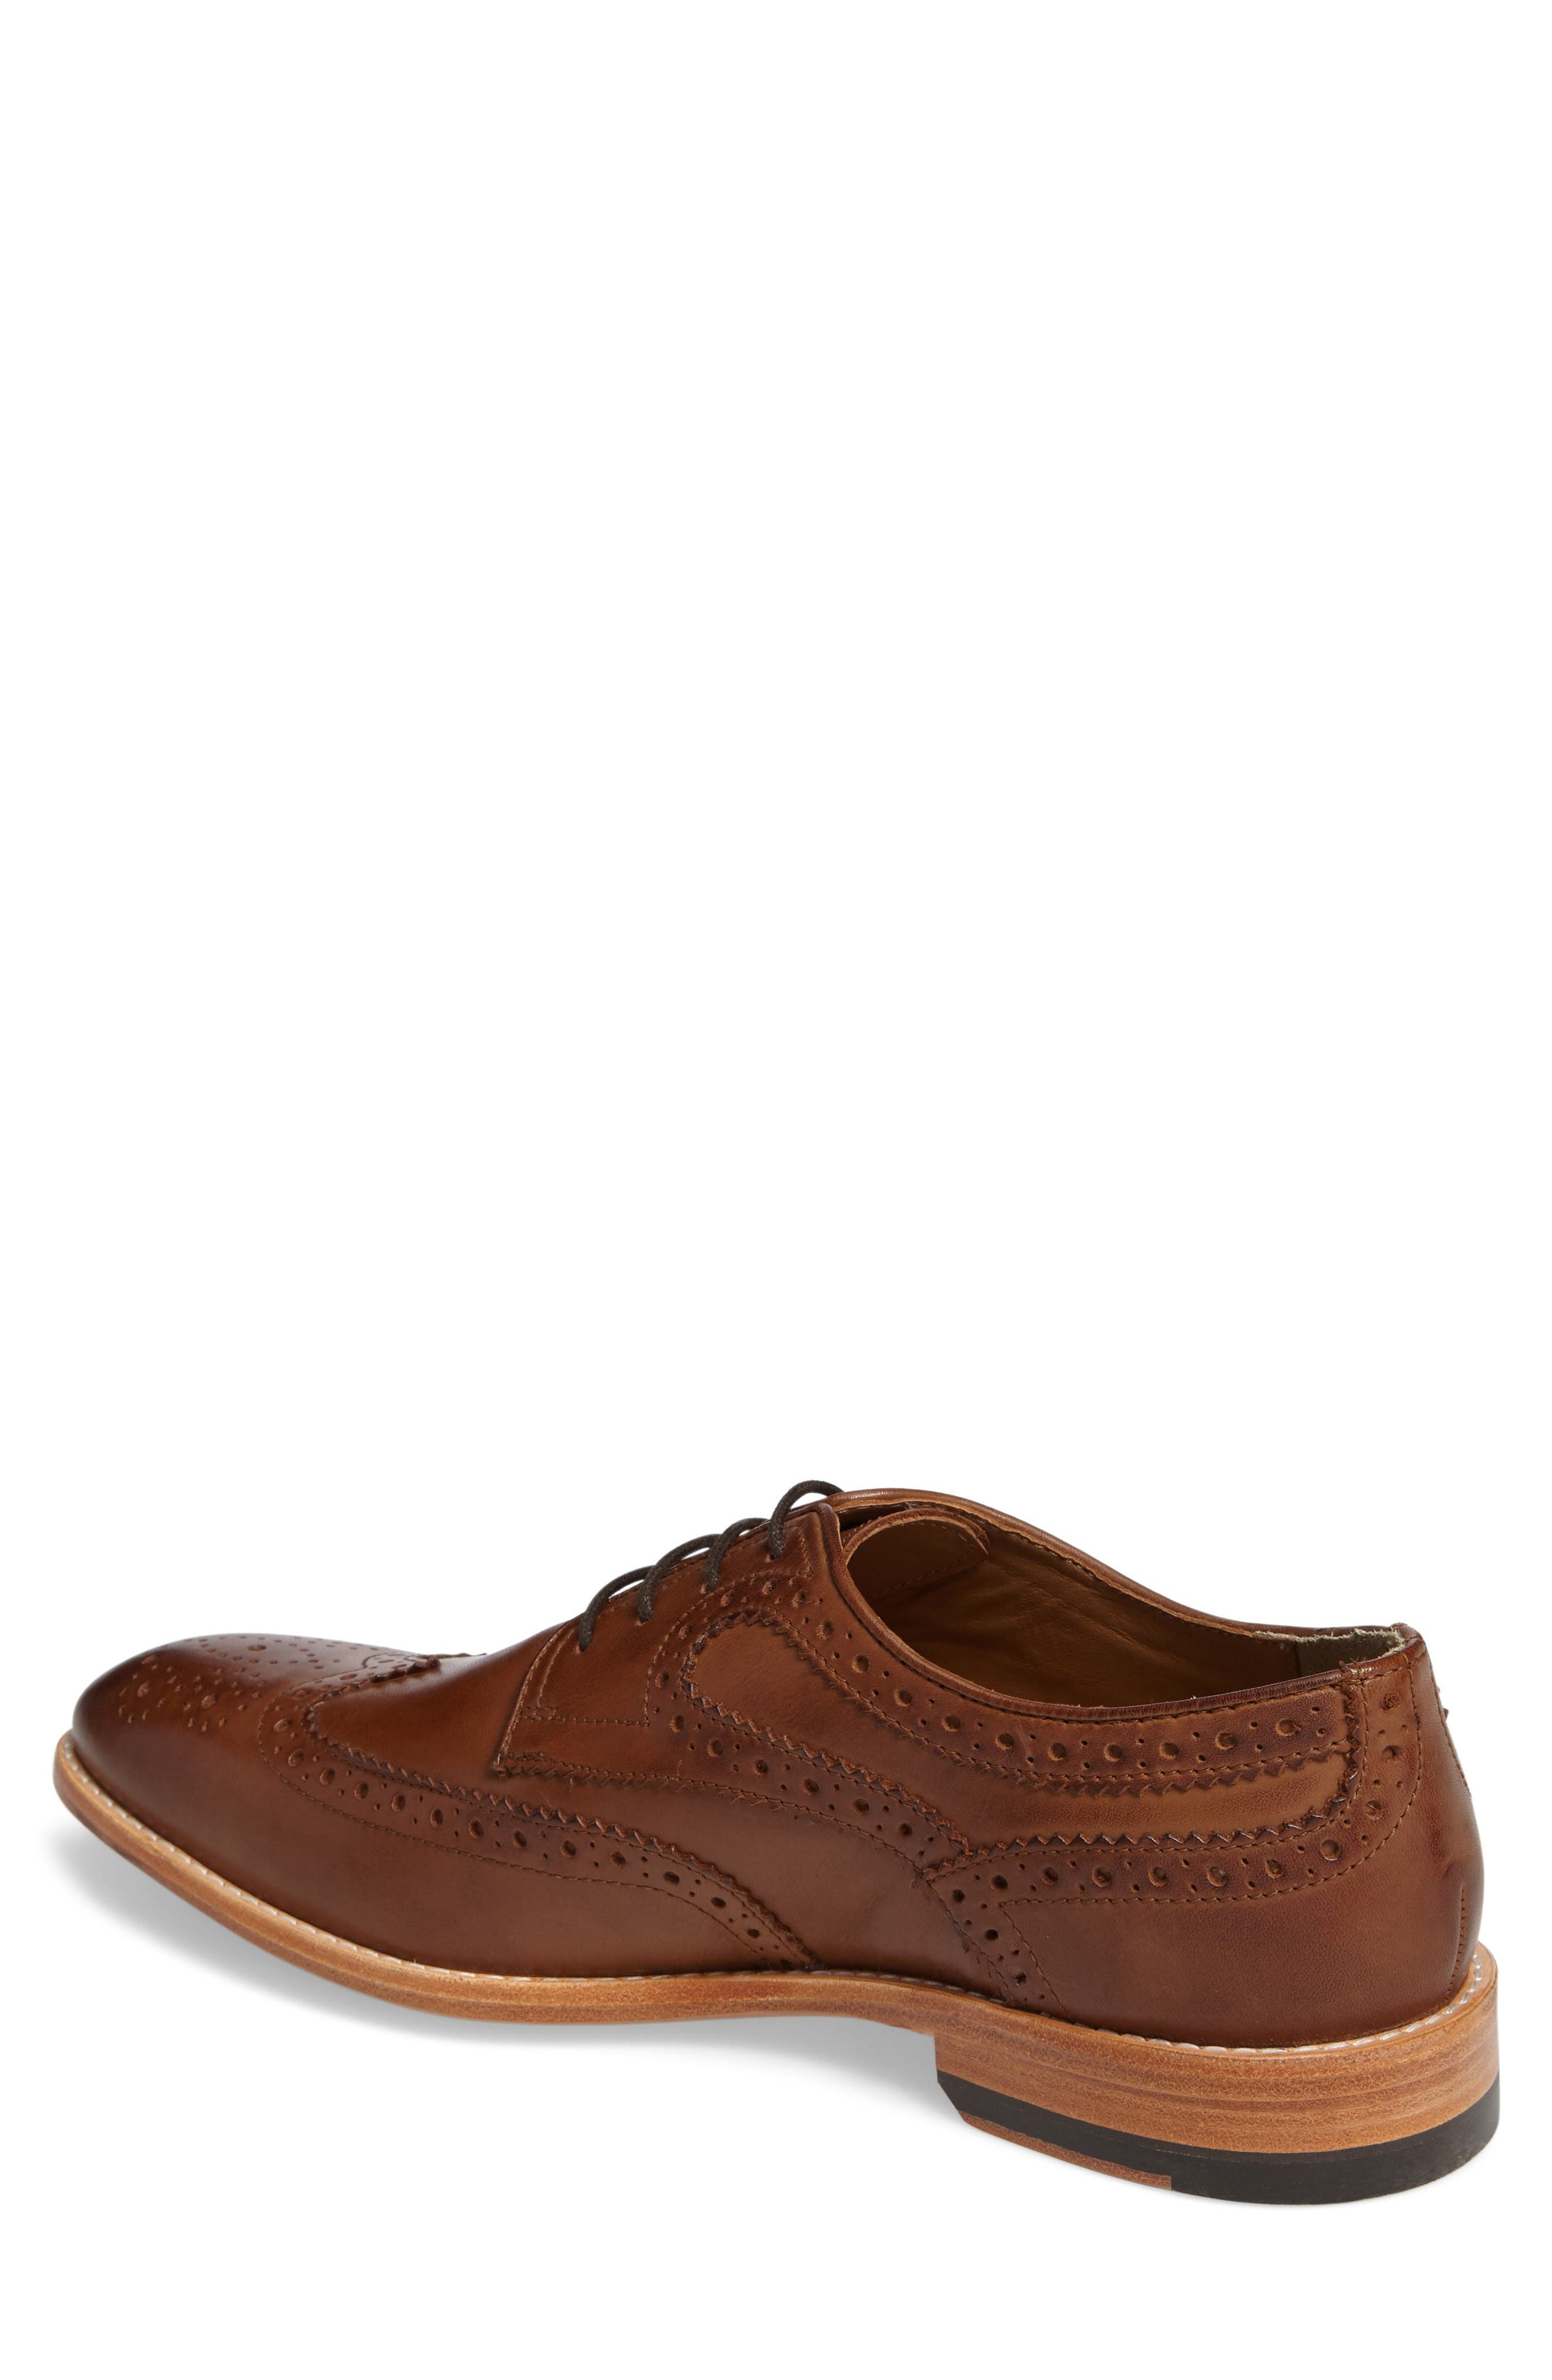 Vance Wingtip Oxford,                             Alternate thumbnail 2, color,                             Tan Leather